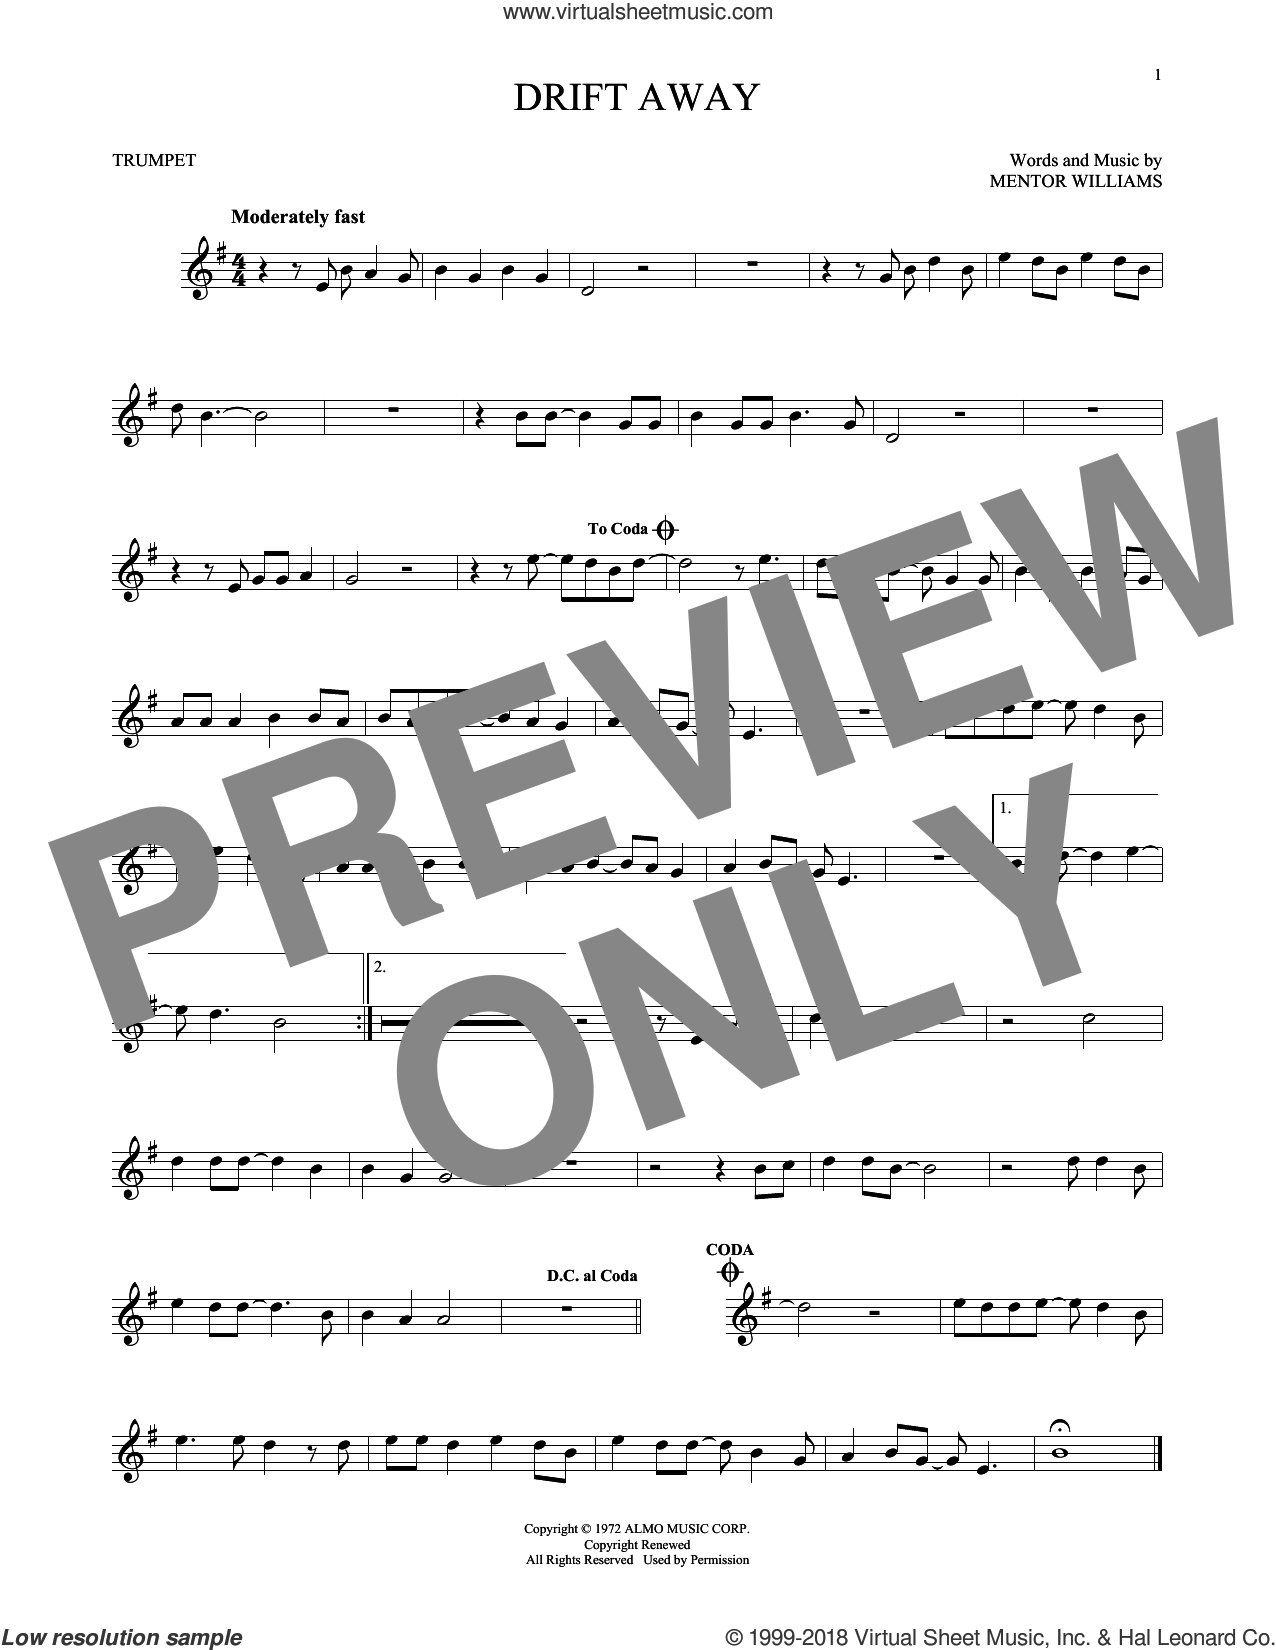 Drift Away sheet music for trumpet solo by Dobie Gray and Mentor Williams, intermediate skill level